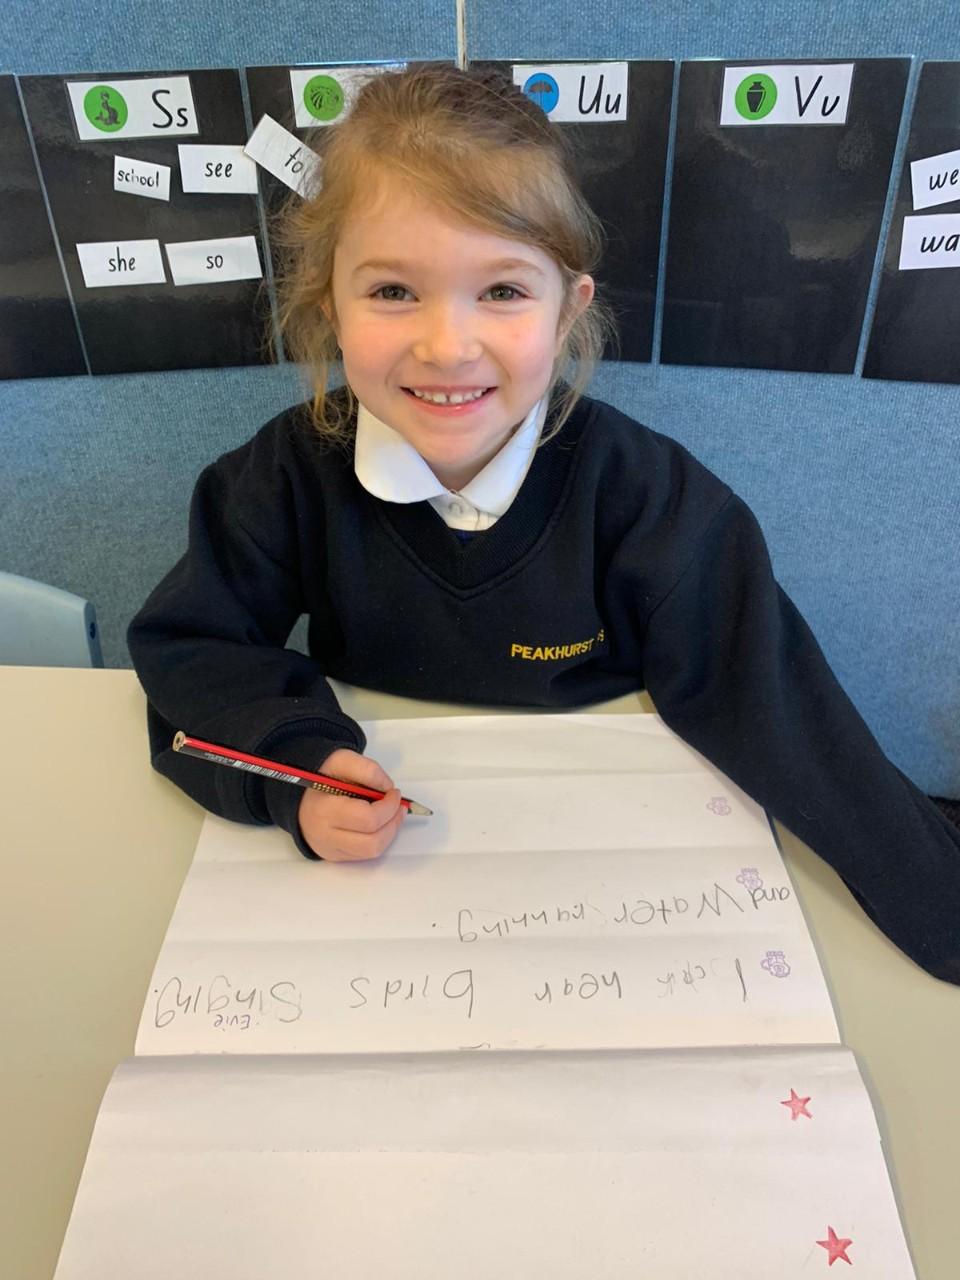 Kindy kid writing